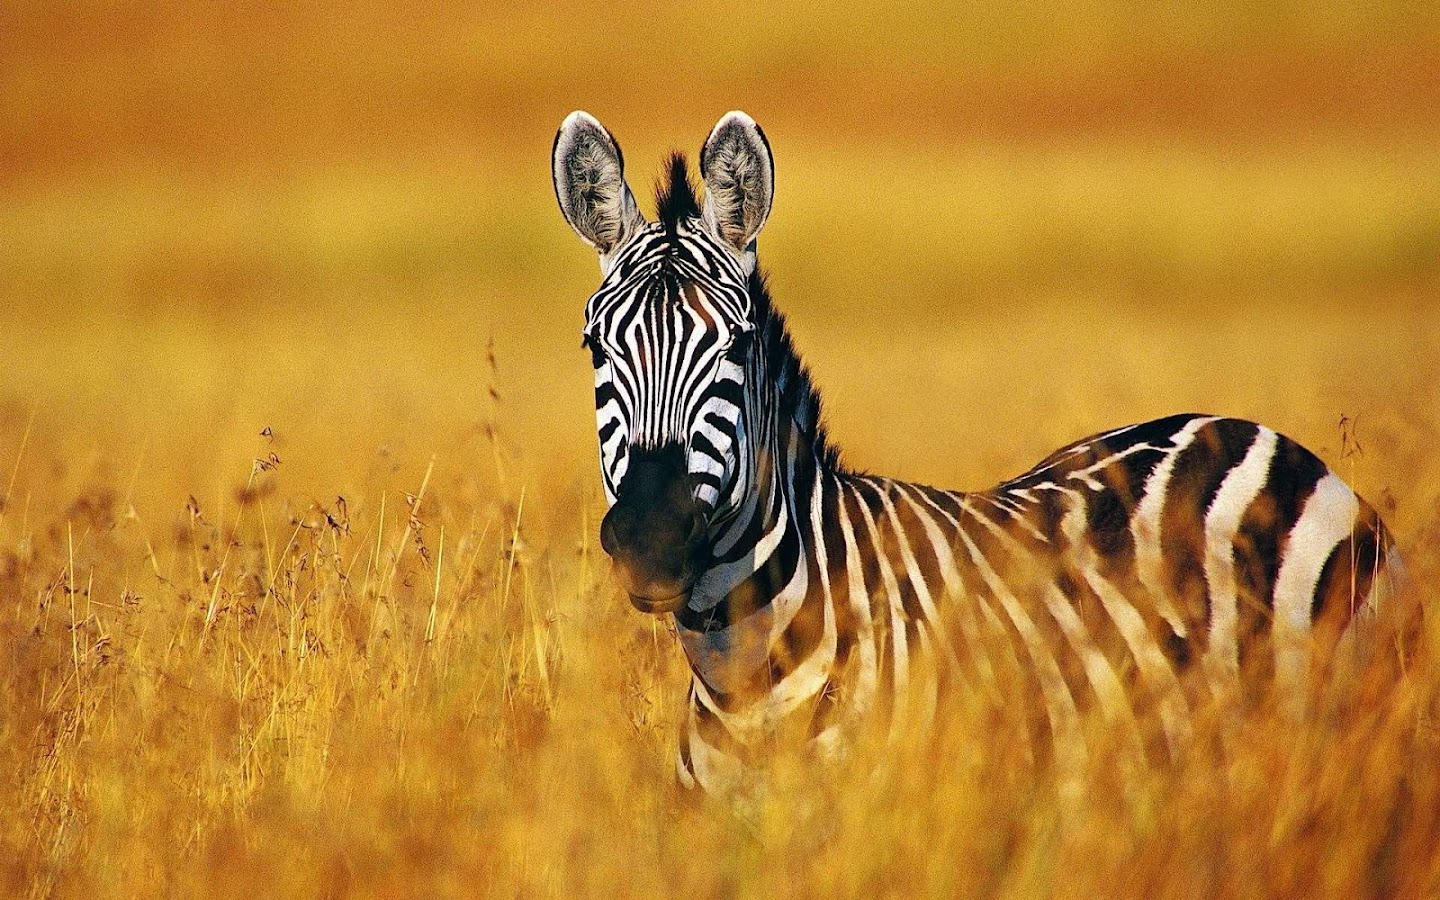 Zebra Wallpaper Android Apps on Google Play